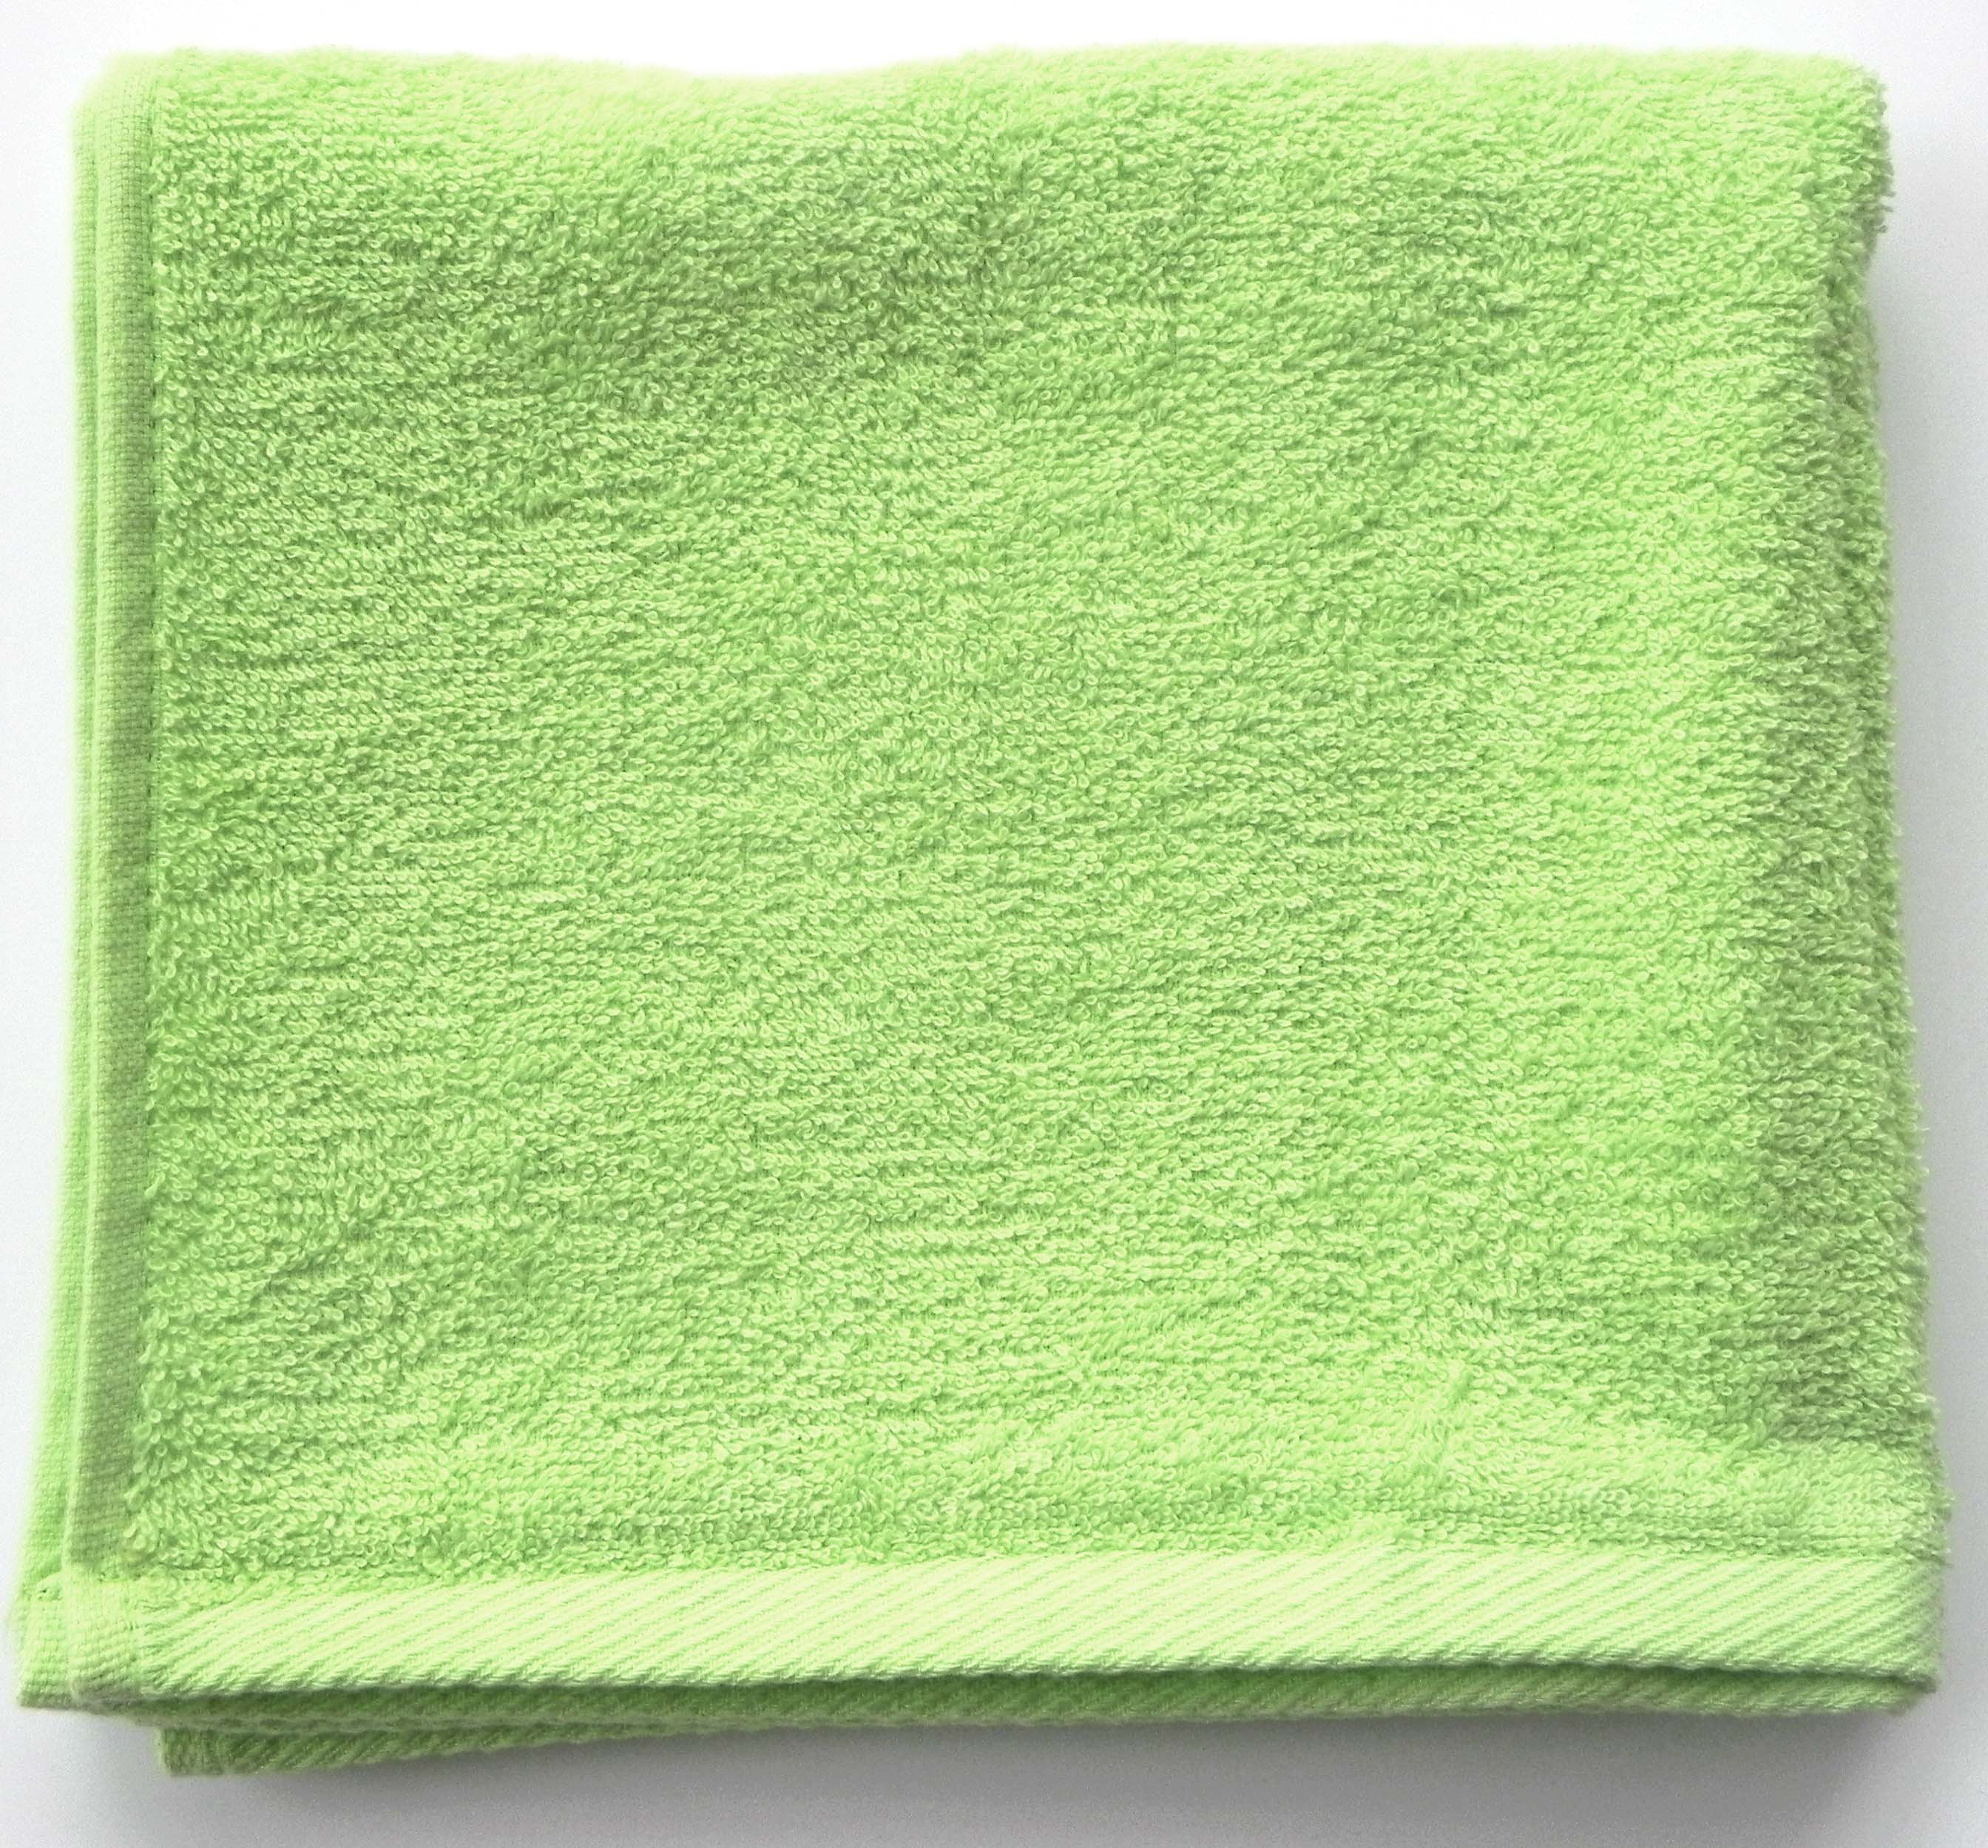 Terry Cloth, 380 g/m², 200 cm, paradise green